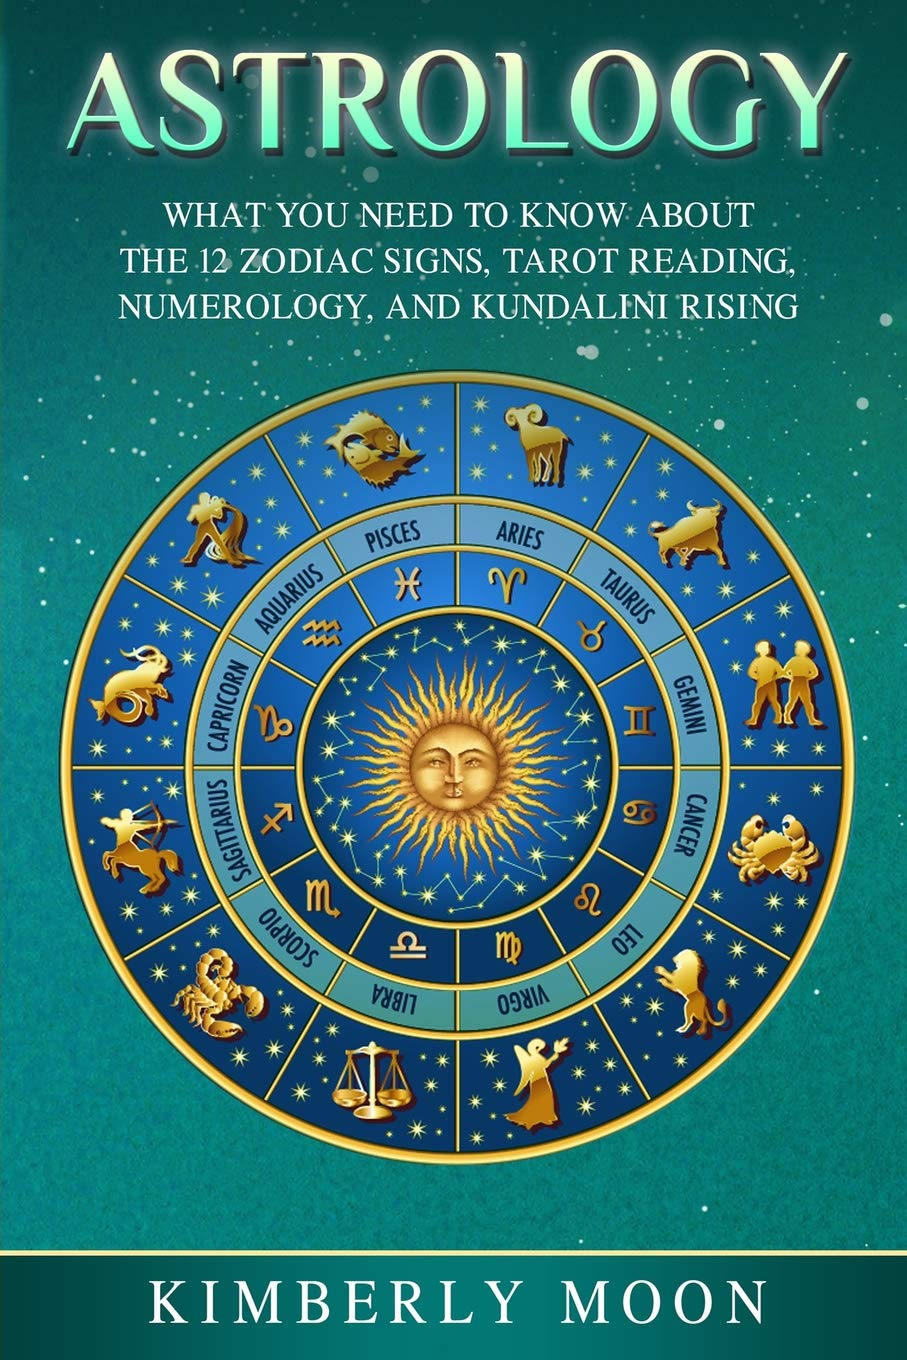 Astrology: What You Need to Know About the 12 Zodiac Signs